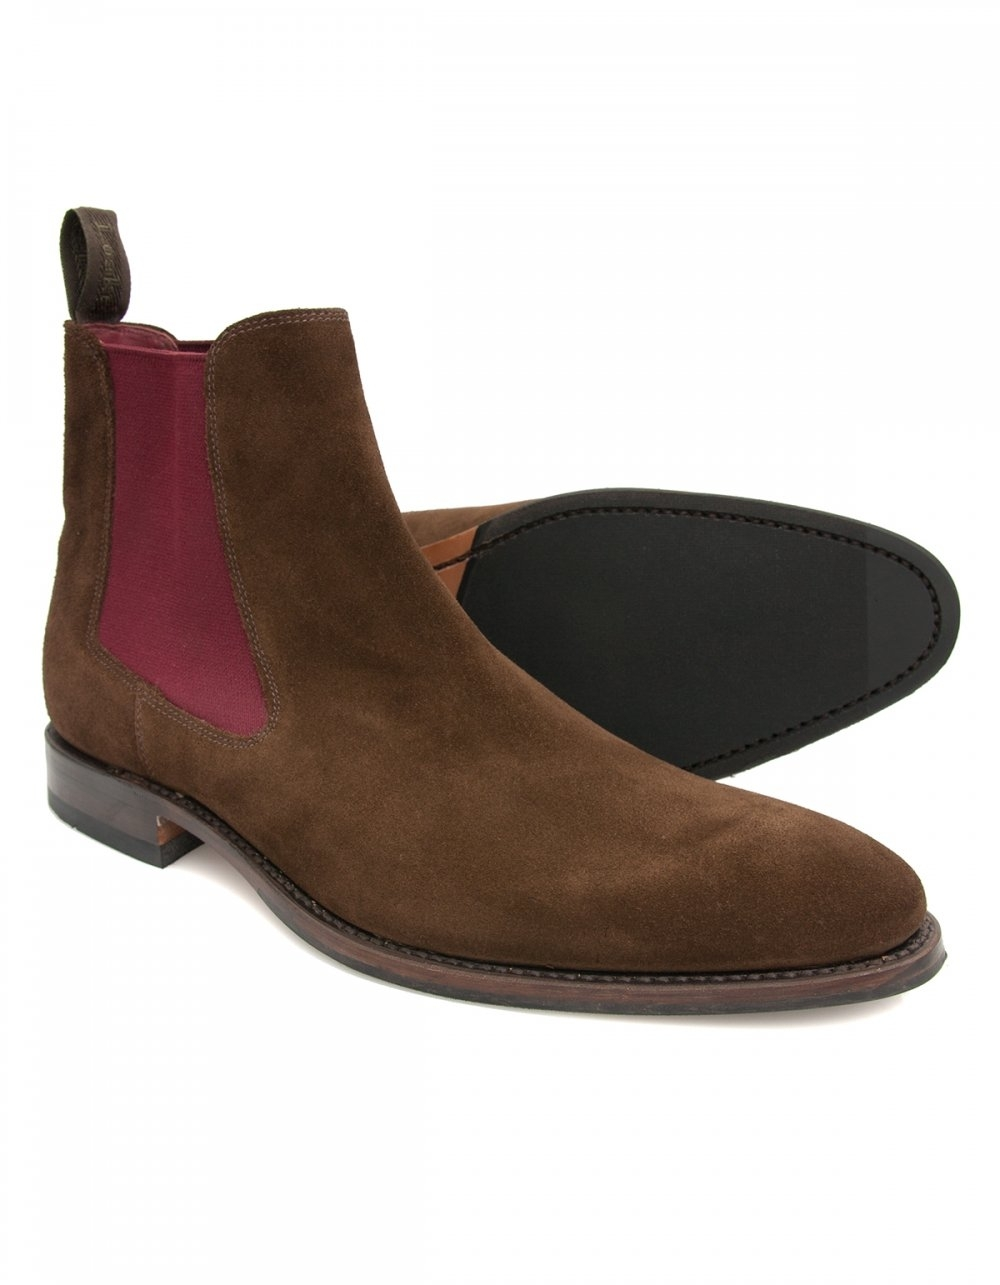 loake hutchinson brown suede chelsea boot with burgundy elastic. Black Bedroom Furniture Sets. Home Design Ideas